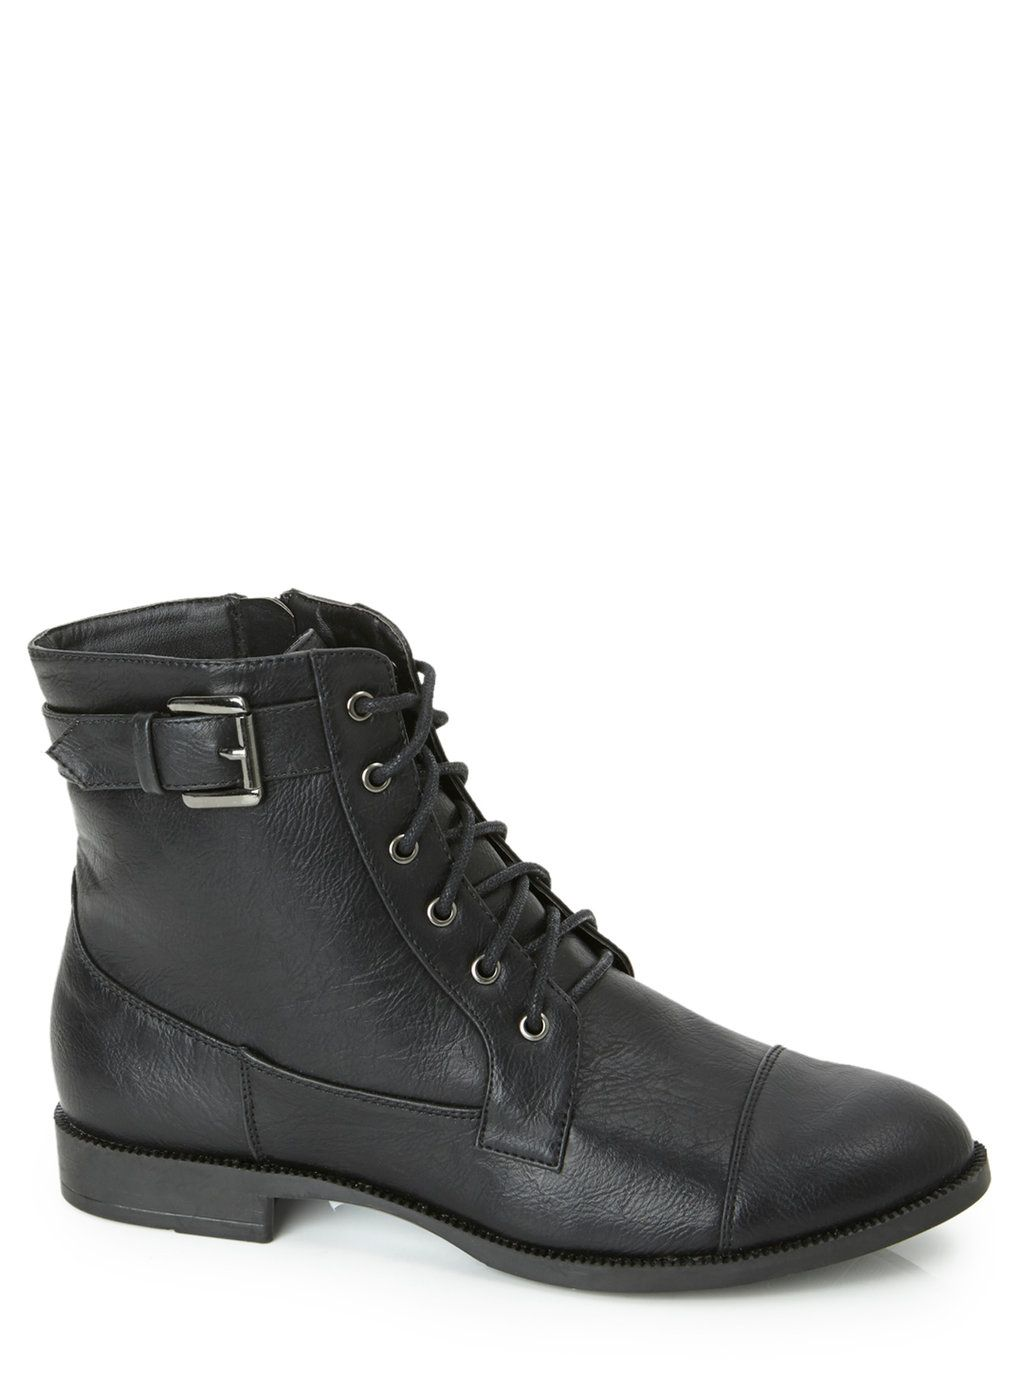 black flat lace up boots | Gommap Blog